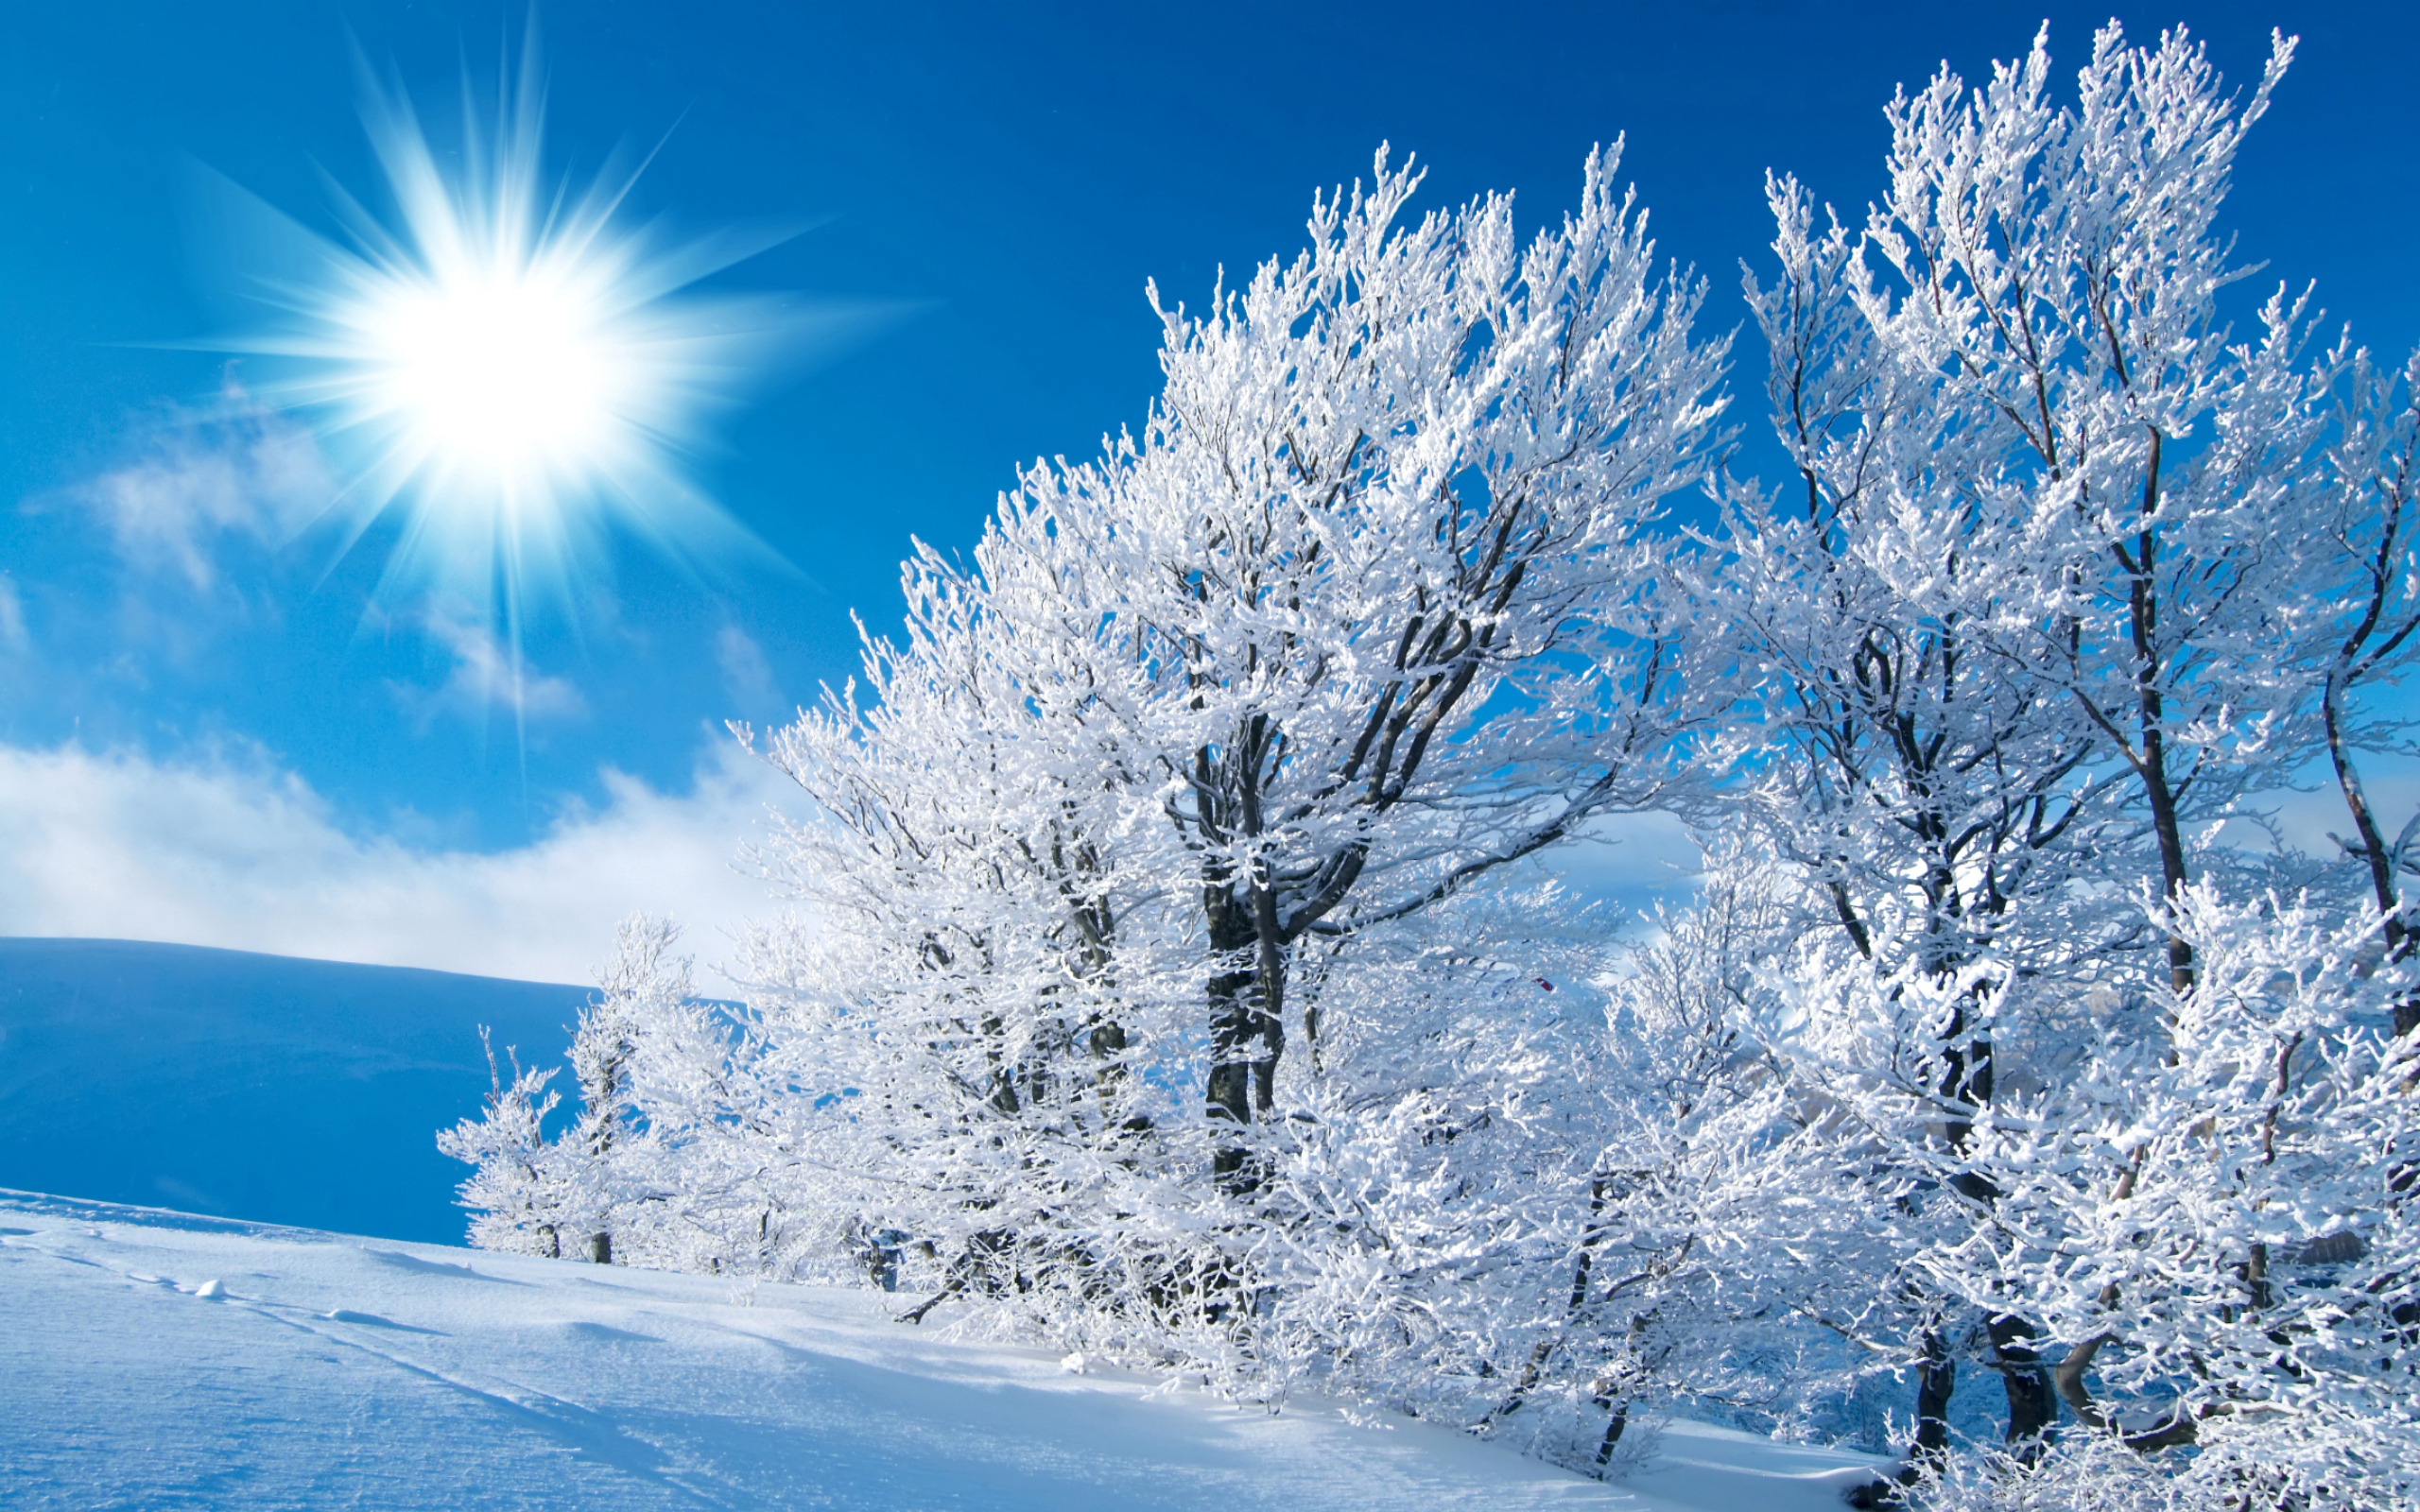 Winter Snow Wallpaper HD 2